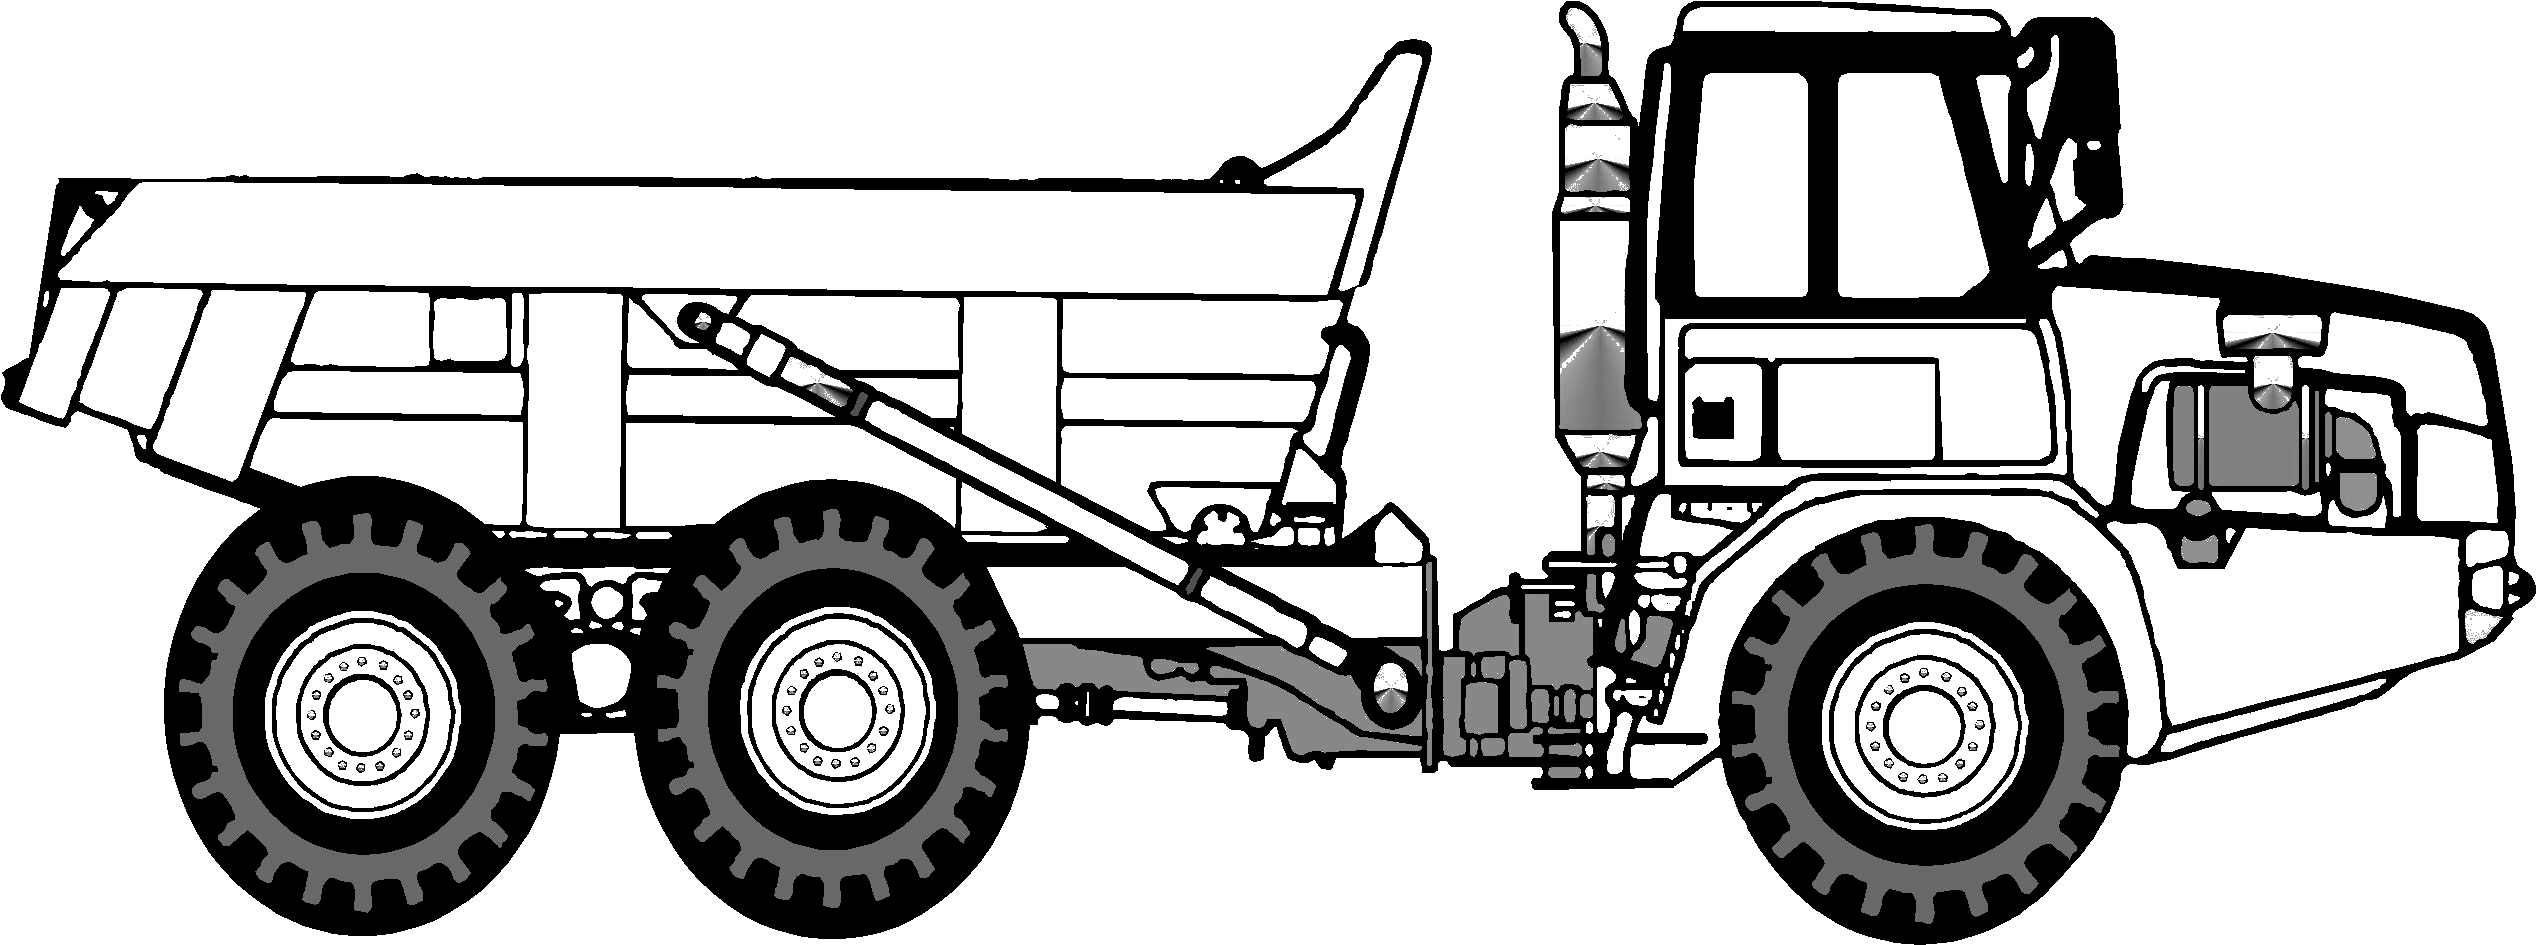 Airbus a300 b2 as well Citroen ds4 furthermore Articulating Dump Truck further Coupe D Un Dessin Technique likewise Nissan GTR Drawing 413586791. on free car blueprints